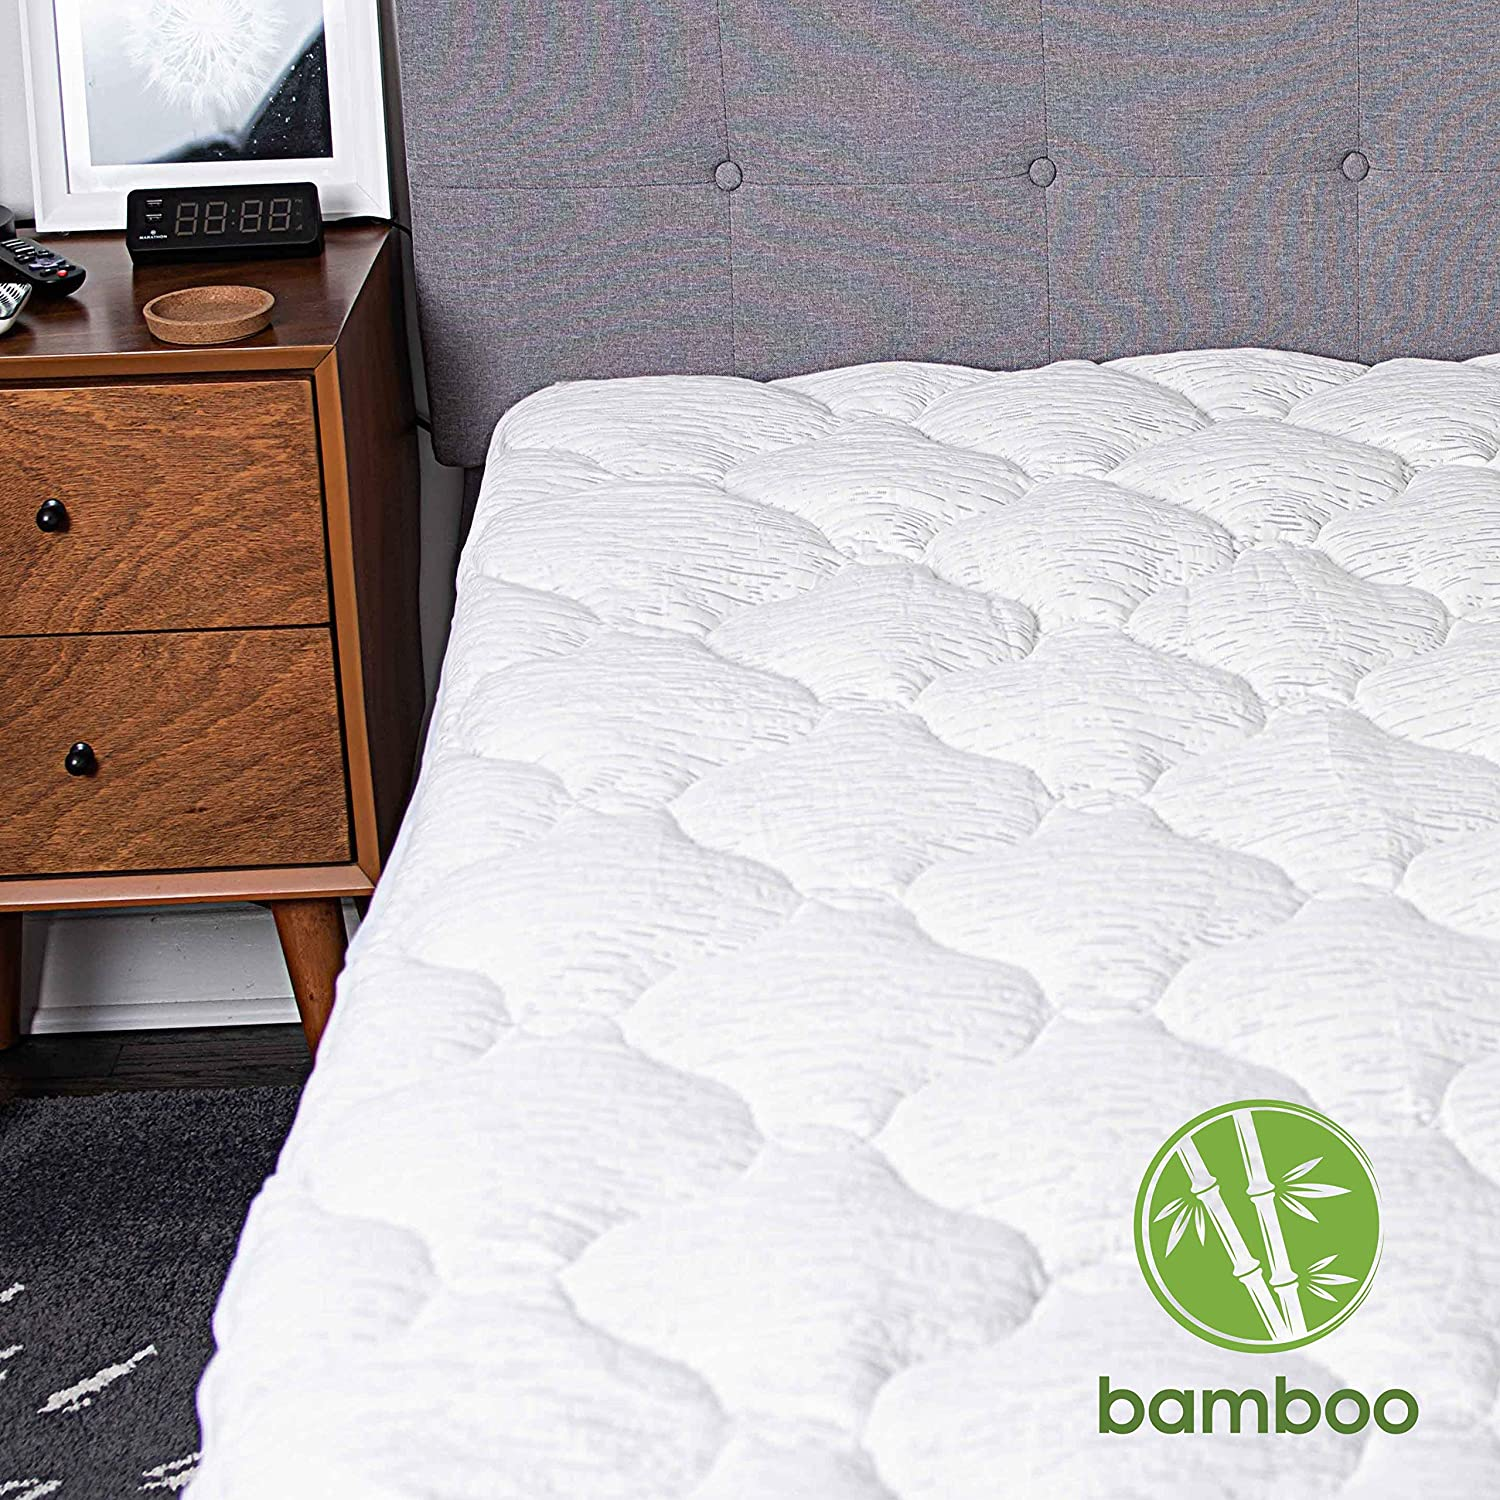 Roore Queen Cooling Bamboo Mattress Pad Cover - Extra Thick Quilted Mattress Topper Pillow Top Matress Cover Over Filled with Hypoallergenic Down Alternative Filling Breathable Mattress Protector